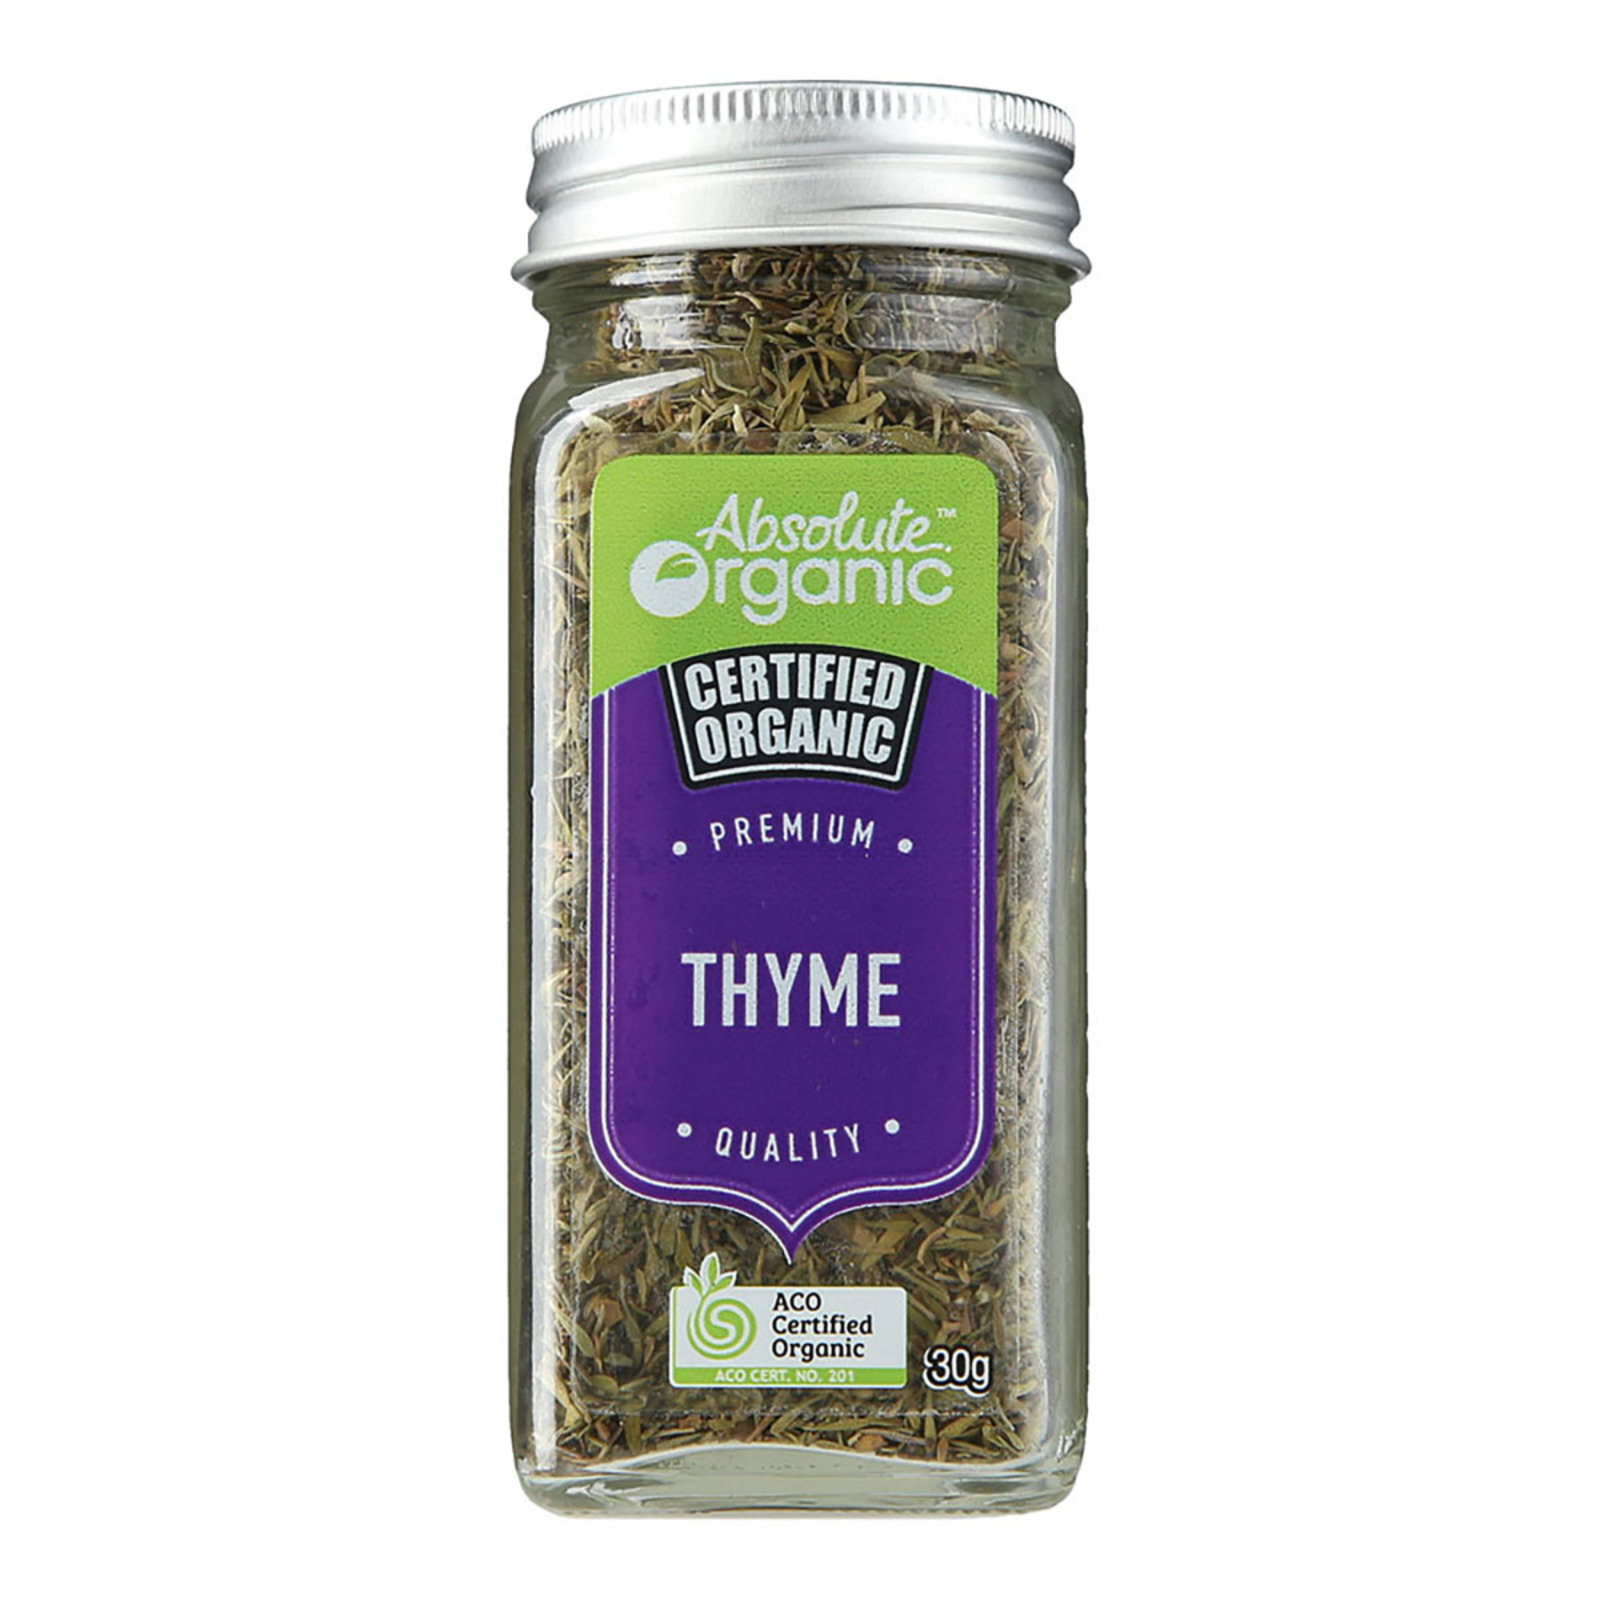 Absolute Organic Thyme